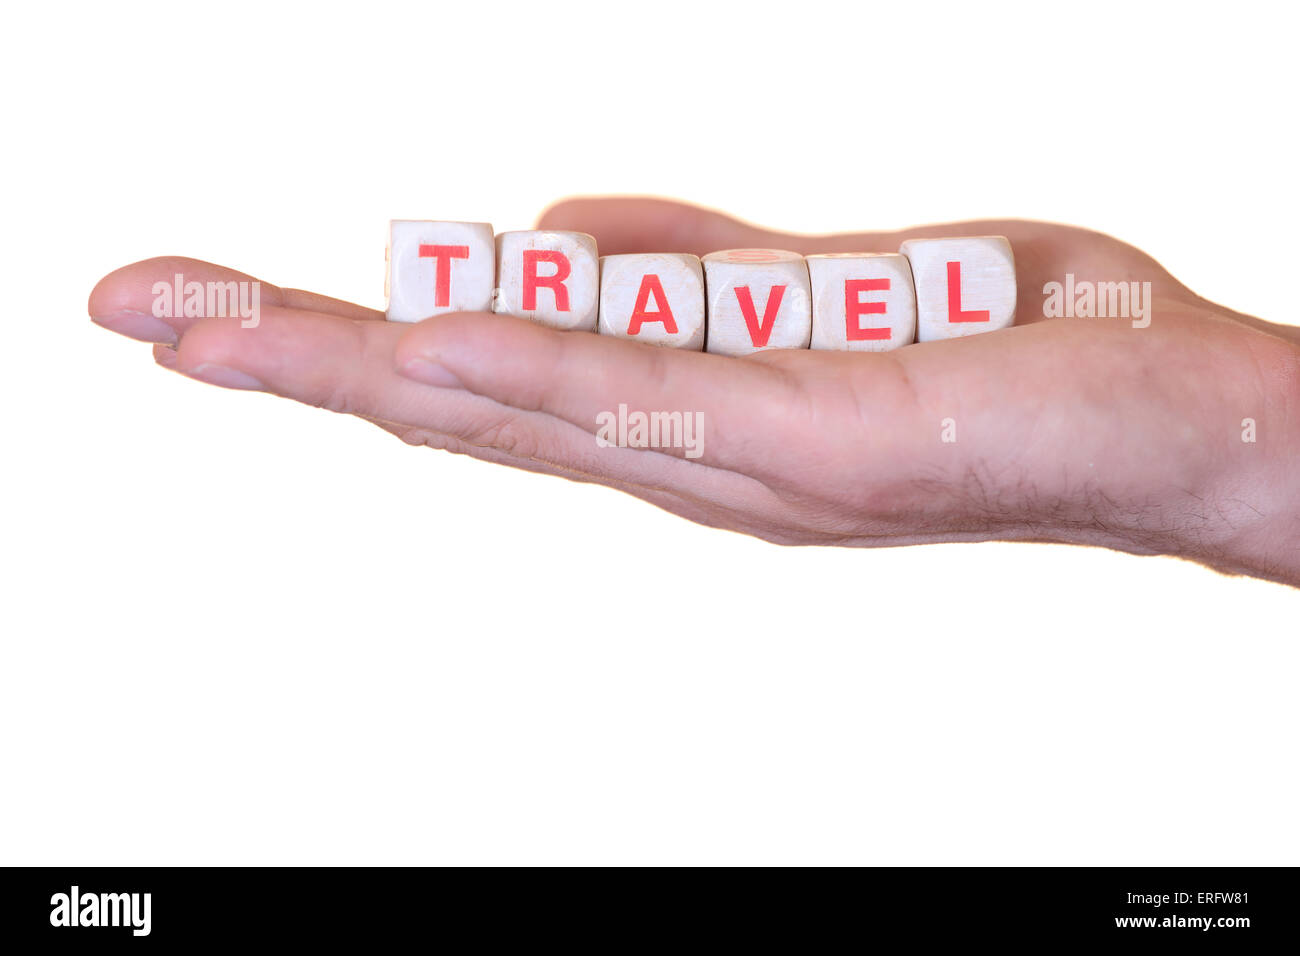 The word travel written with wooden dice on the he palm of the hand. Isolated on white background - Stock Image